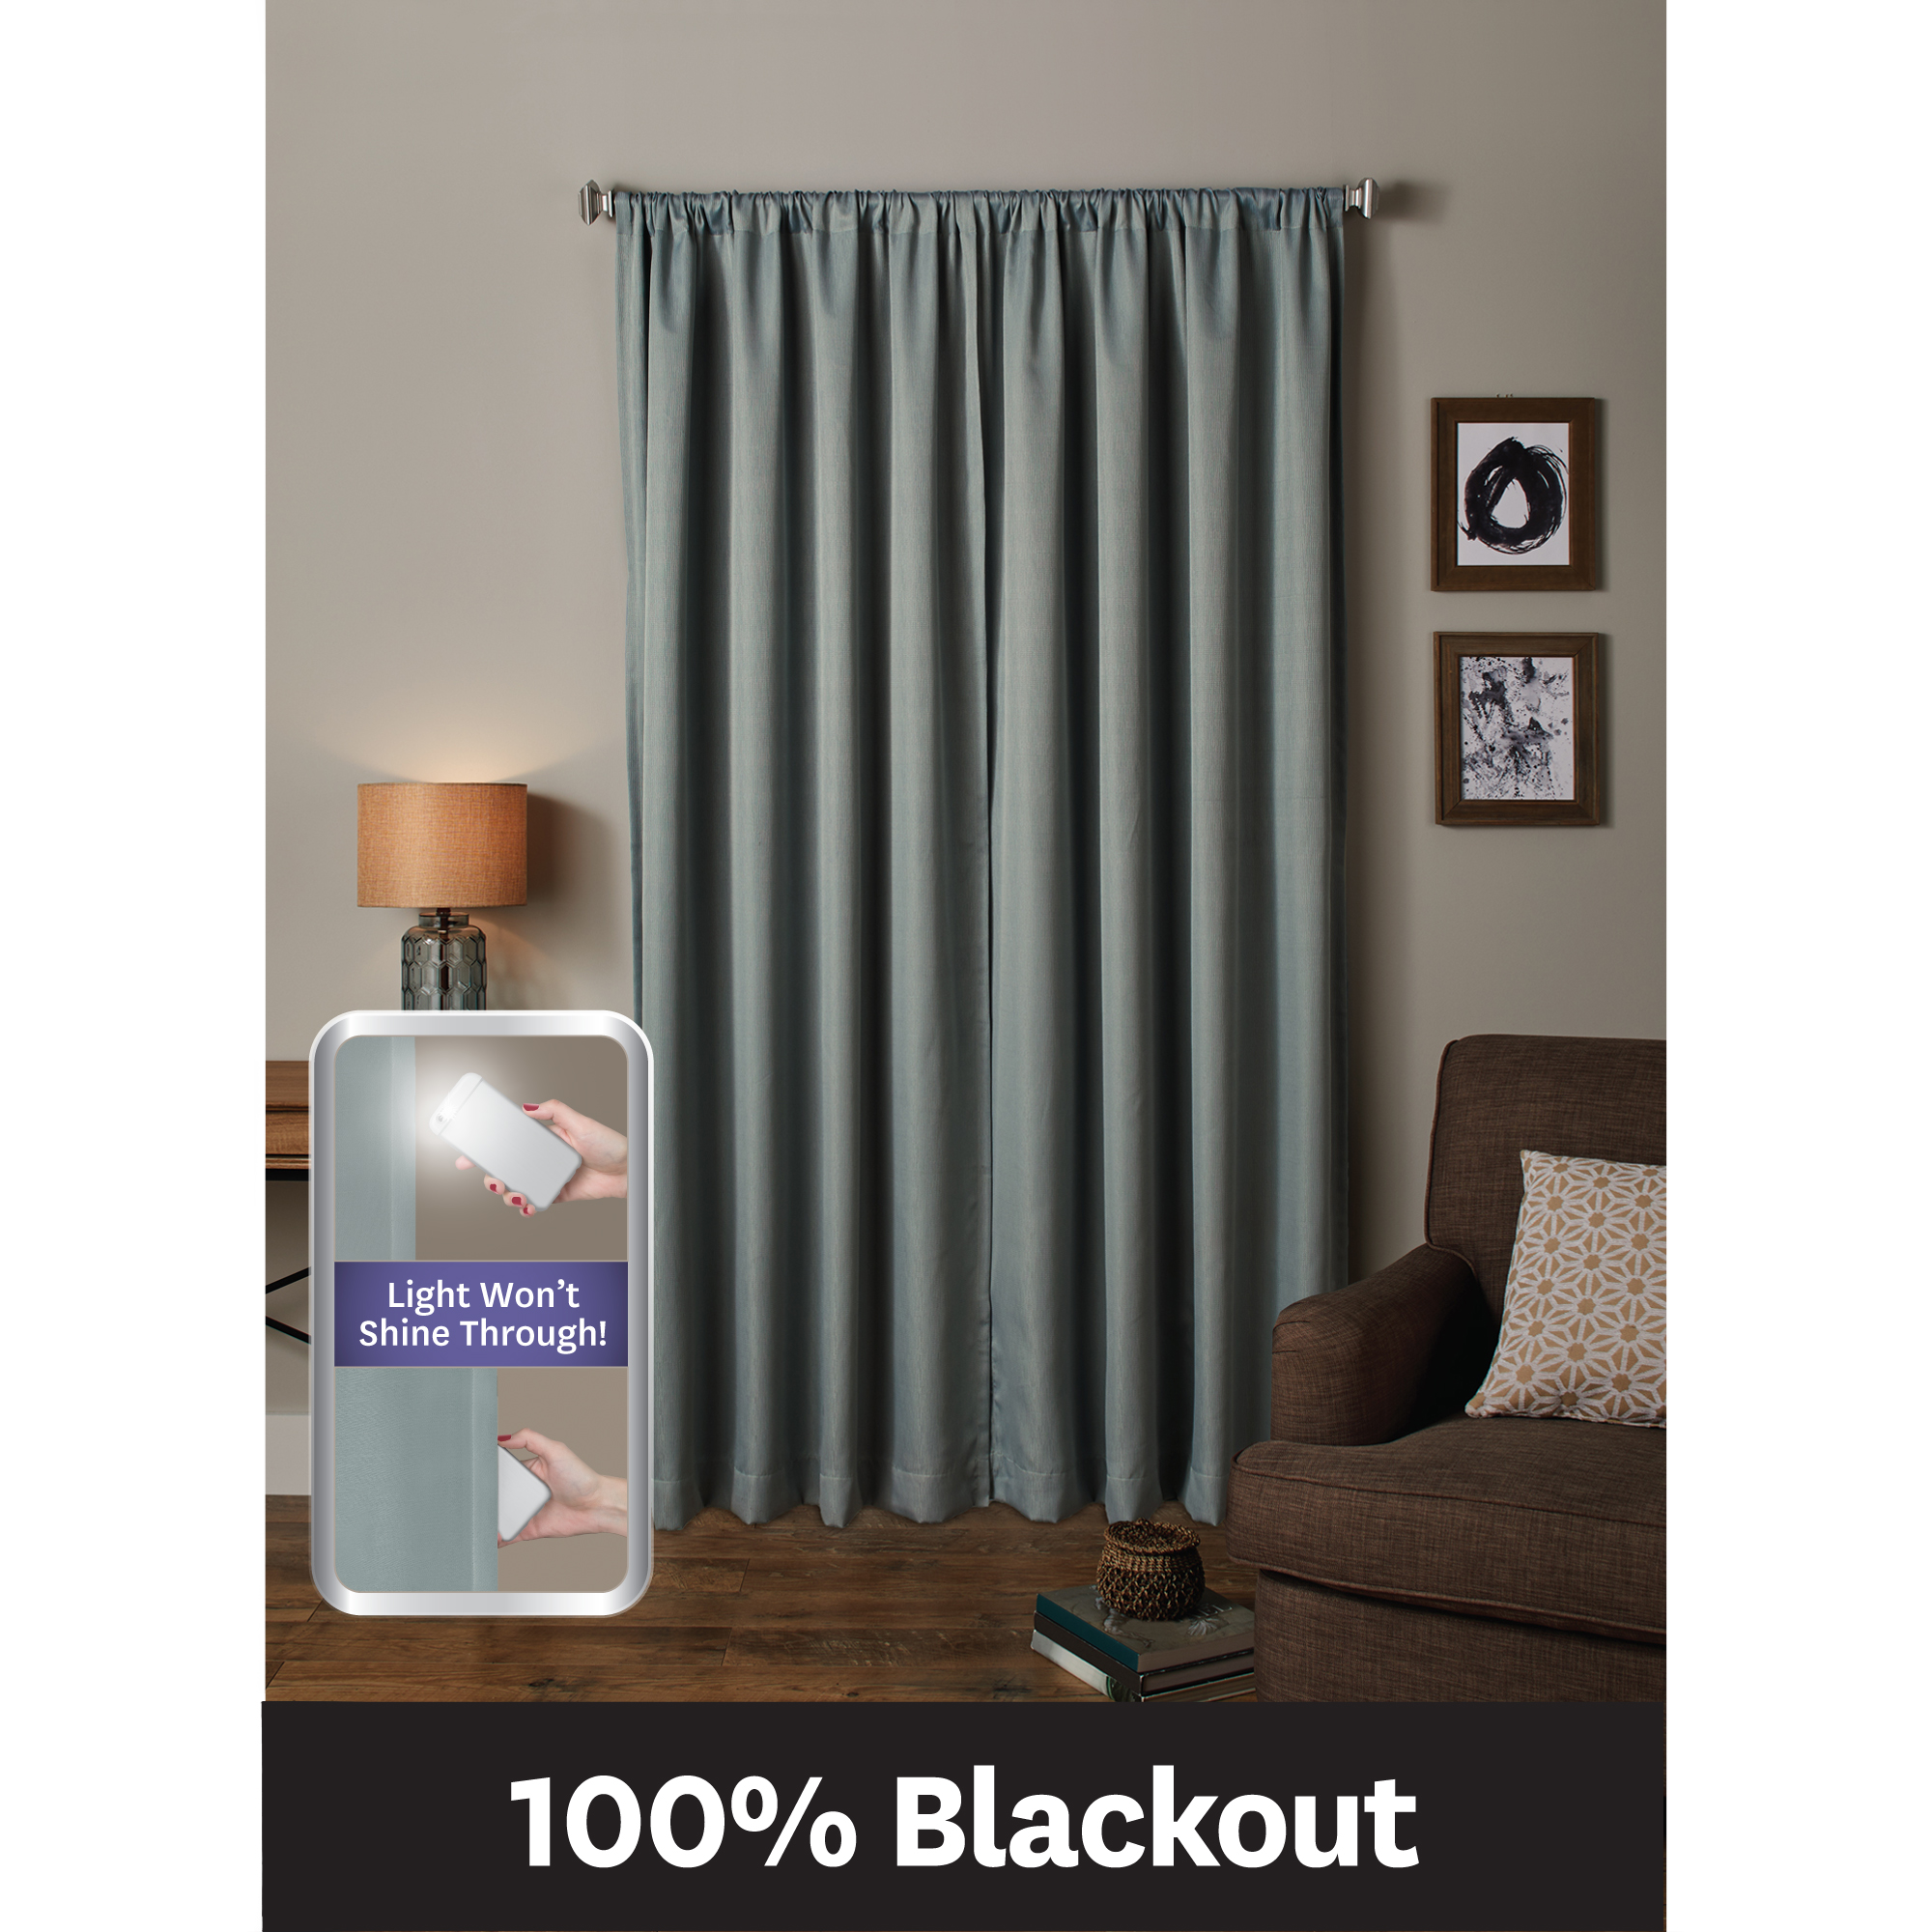 Better Homes and Gardens Ultimate Light Blocker 100 Percent Blackout Tiffany Window... by Maytex Mills